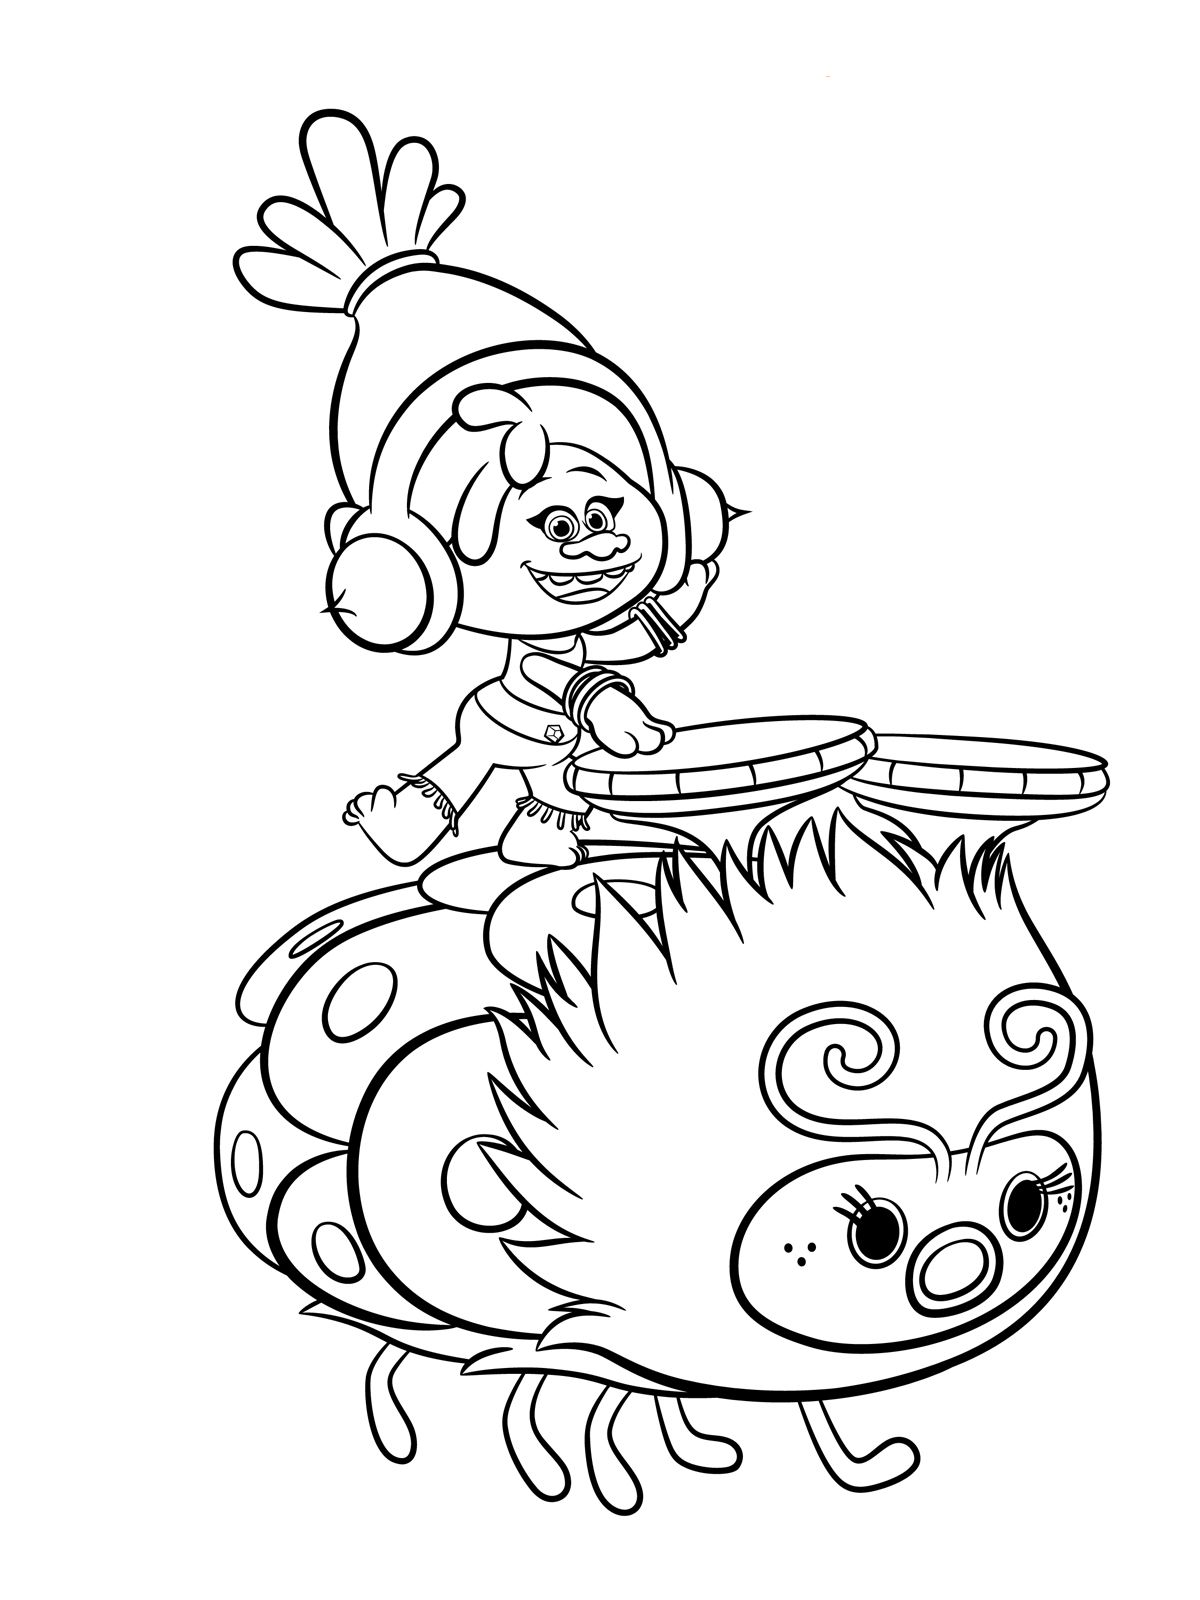 Trolls Coloring Pages To Download And Print For Free Coloring The